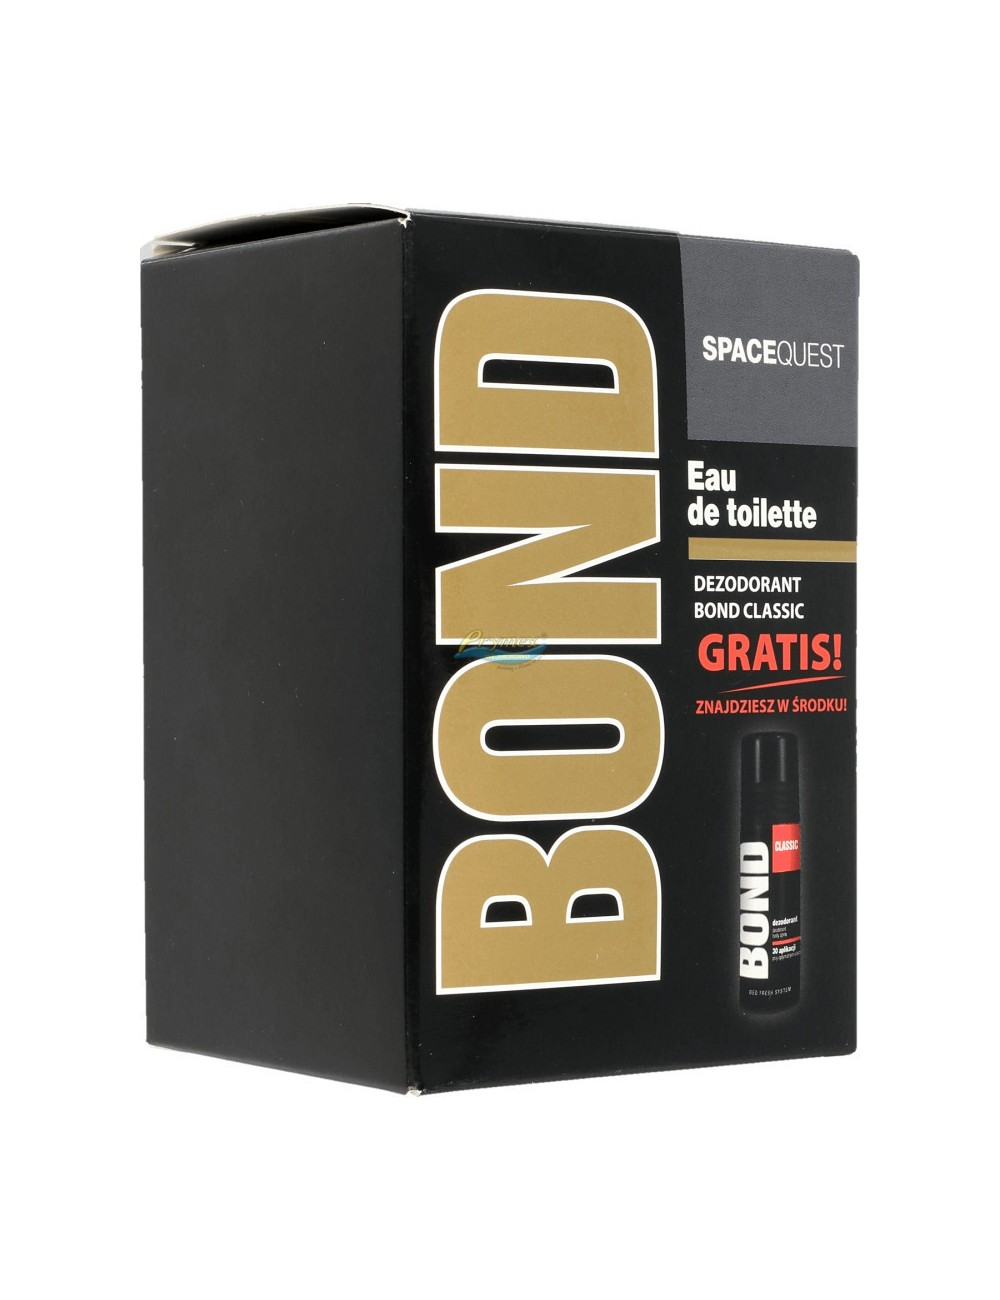 Bond Space Quest Woda Toaletowa 100 ml + Gratis Dezodorant Bond Classic 50 ml